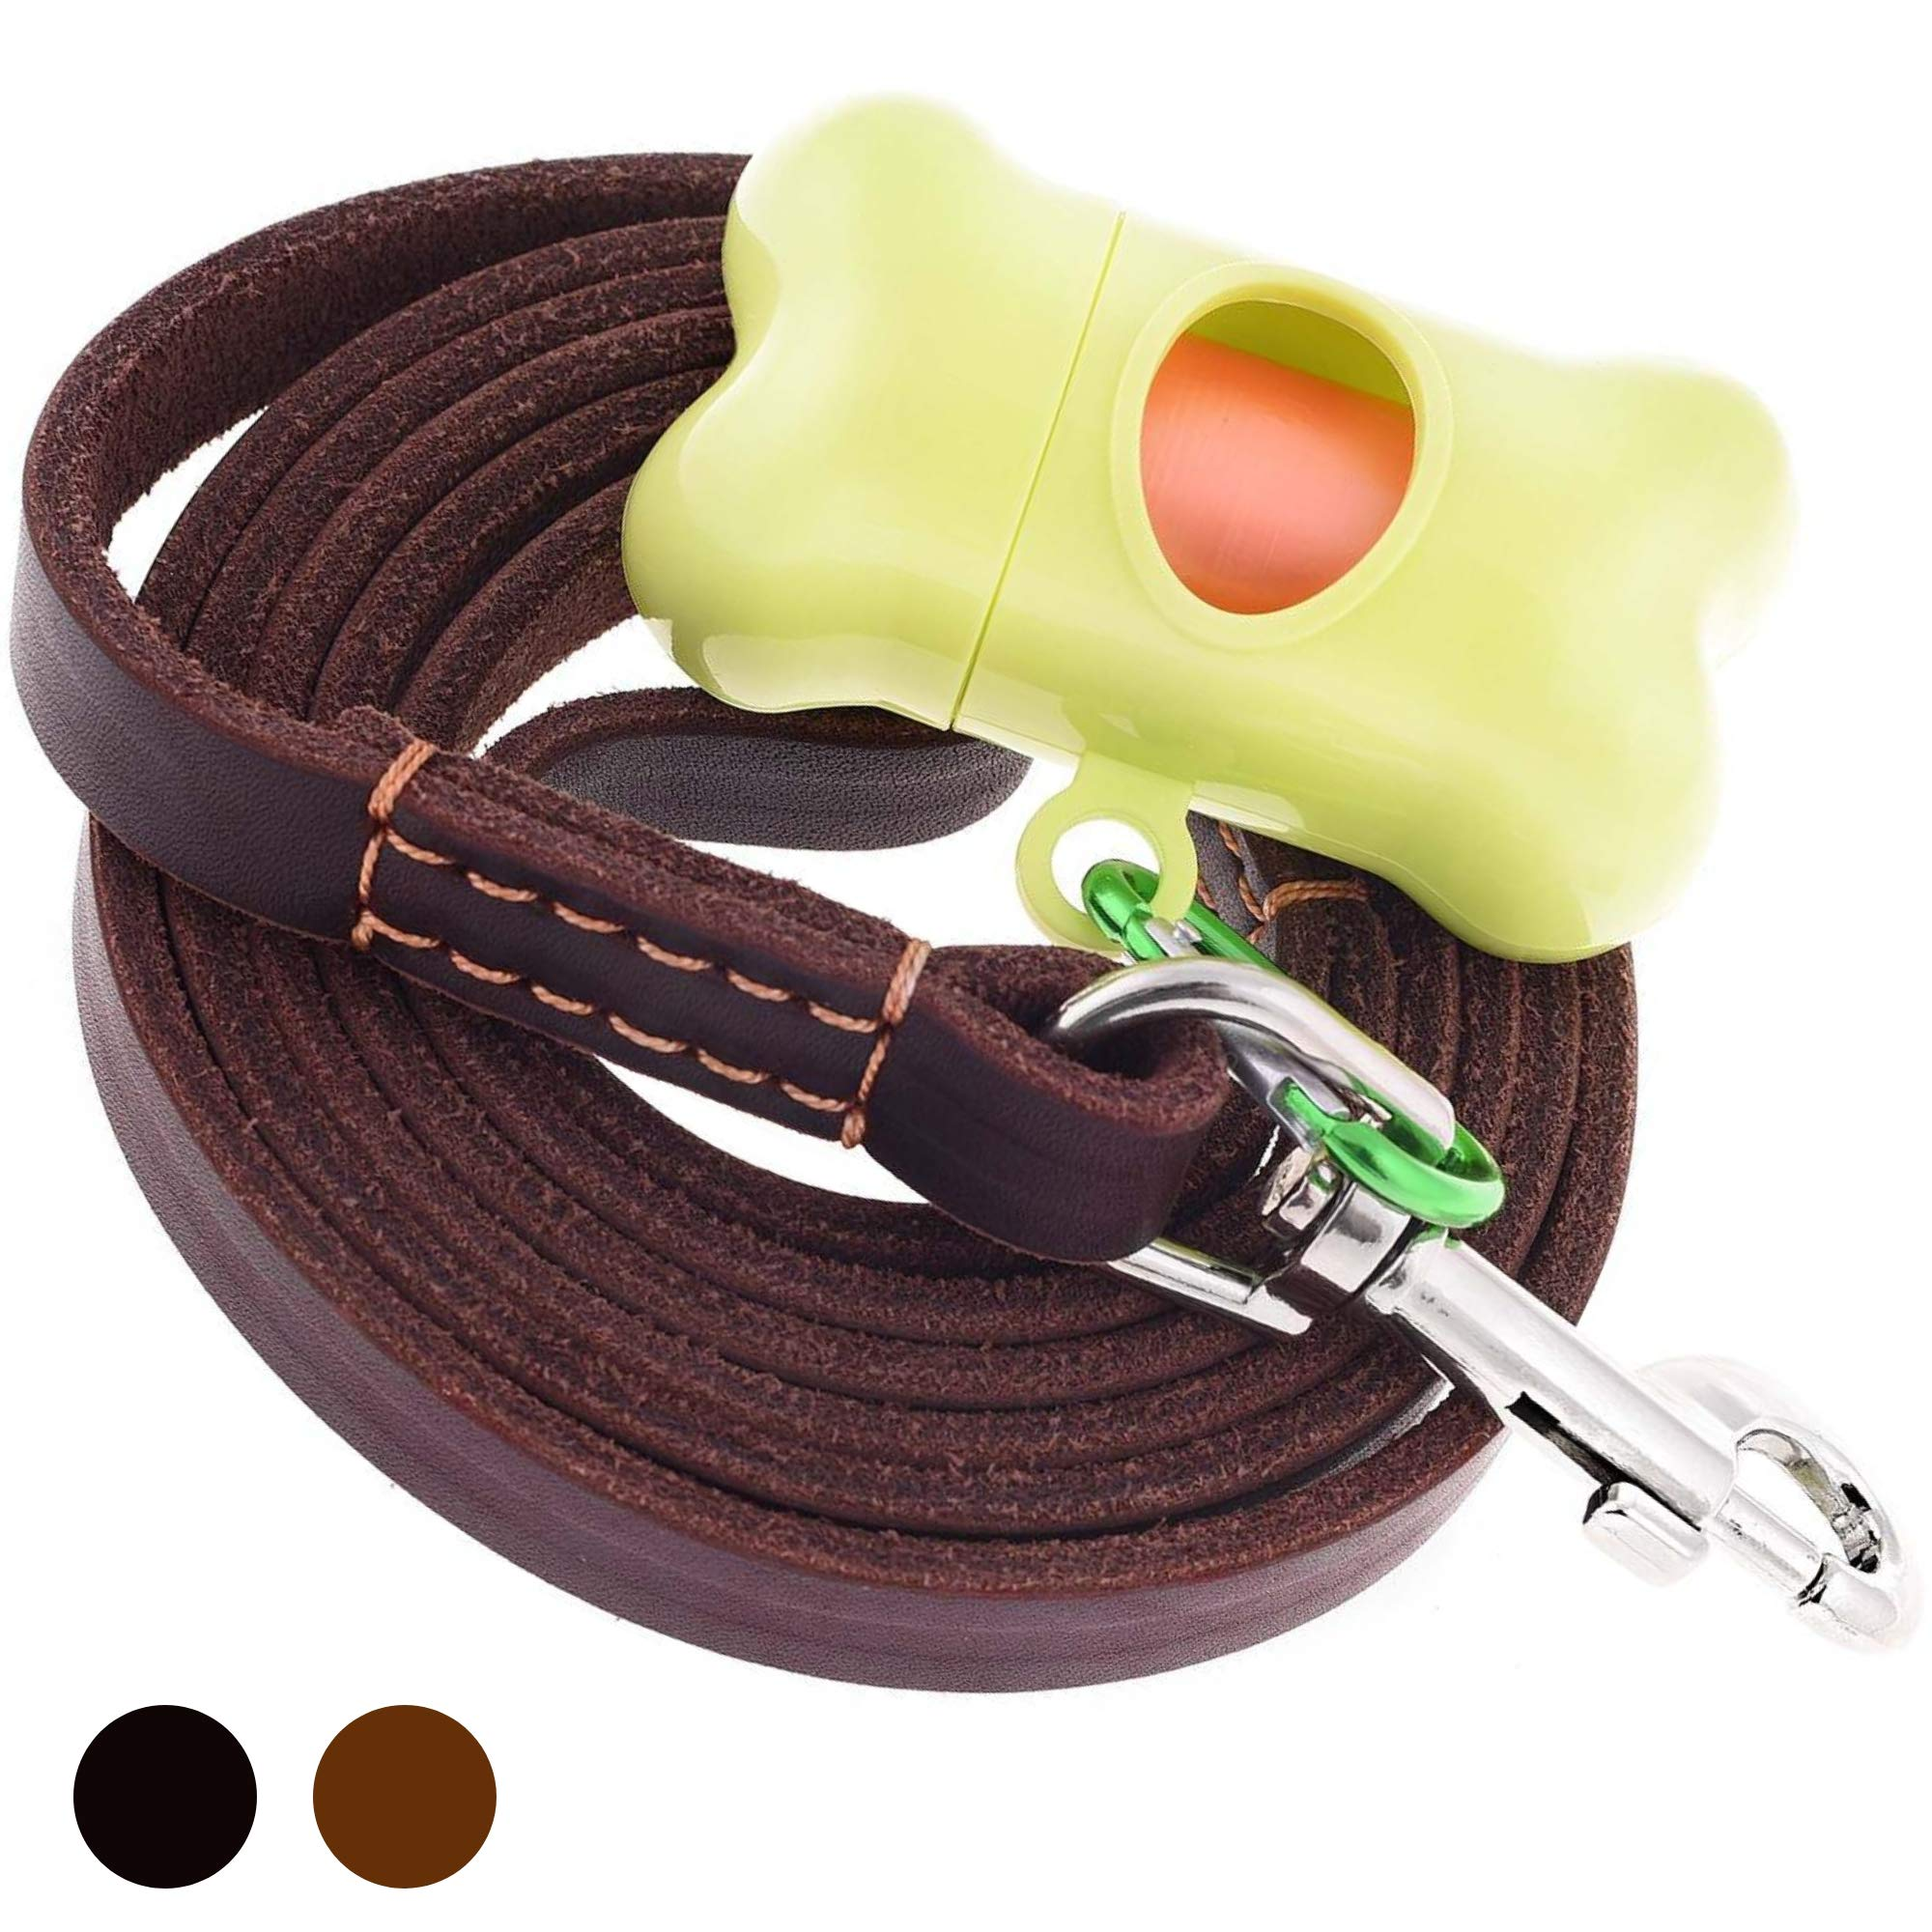 ADITYNA - Leather Dog Leash 6 Foot x 5/8 inch - Strong and Soft Leather Leash for Medium Dogs - Heavy Duty Training Leash (Brown)